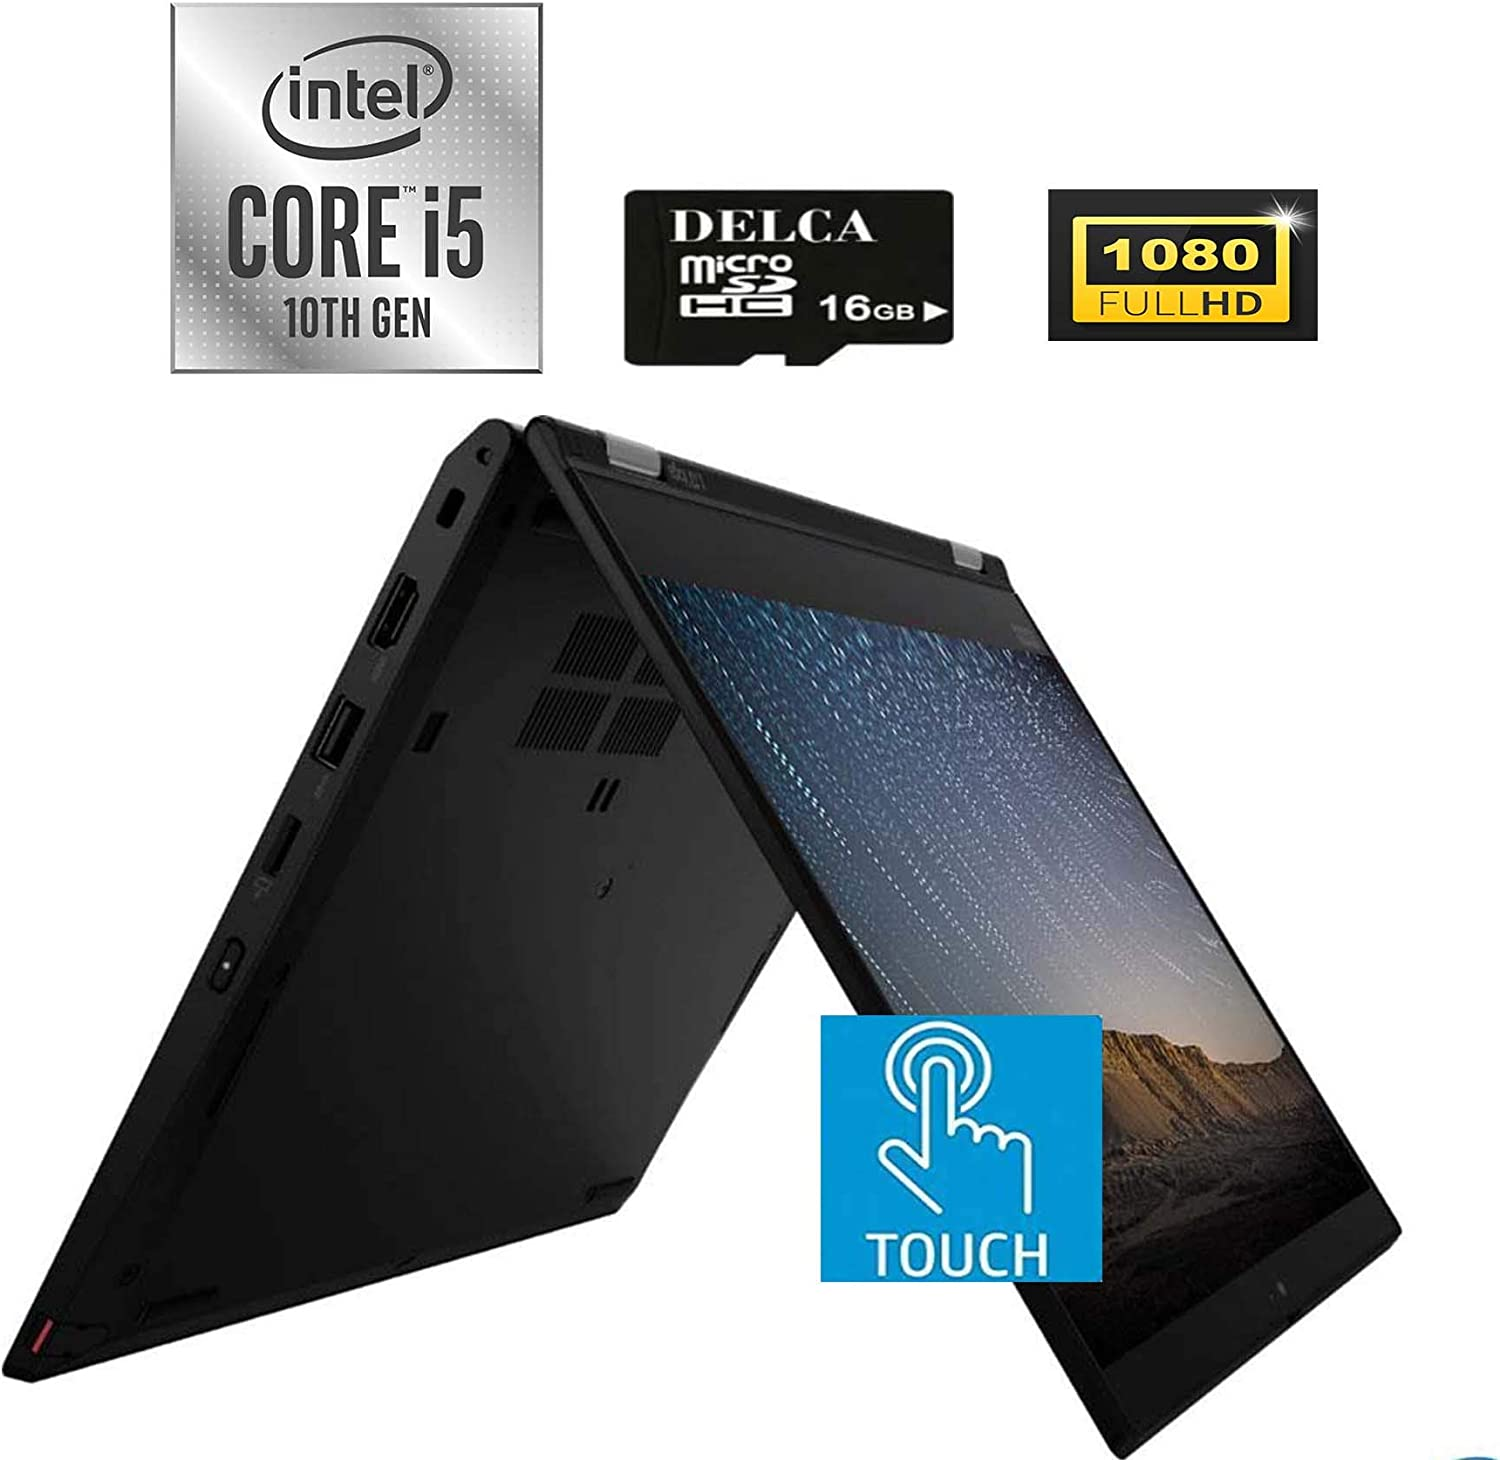 "Lenovo ThinkPad L13 Yoga 2020 Newest 2 in 1 Laptop I 13.3"" FHD IPS Touch I 10th Gen Intel Quad-Core i5-10210U(>i7-7500U) I 8GB DDR4 512GB PCIe SSD I Backlit KB FP Win 10 + Delca 16GB Micro SD Card"